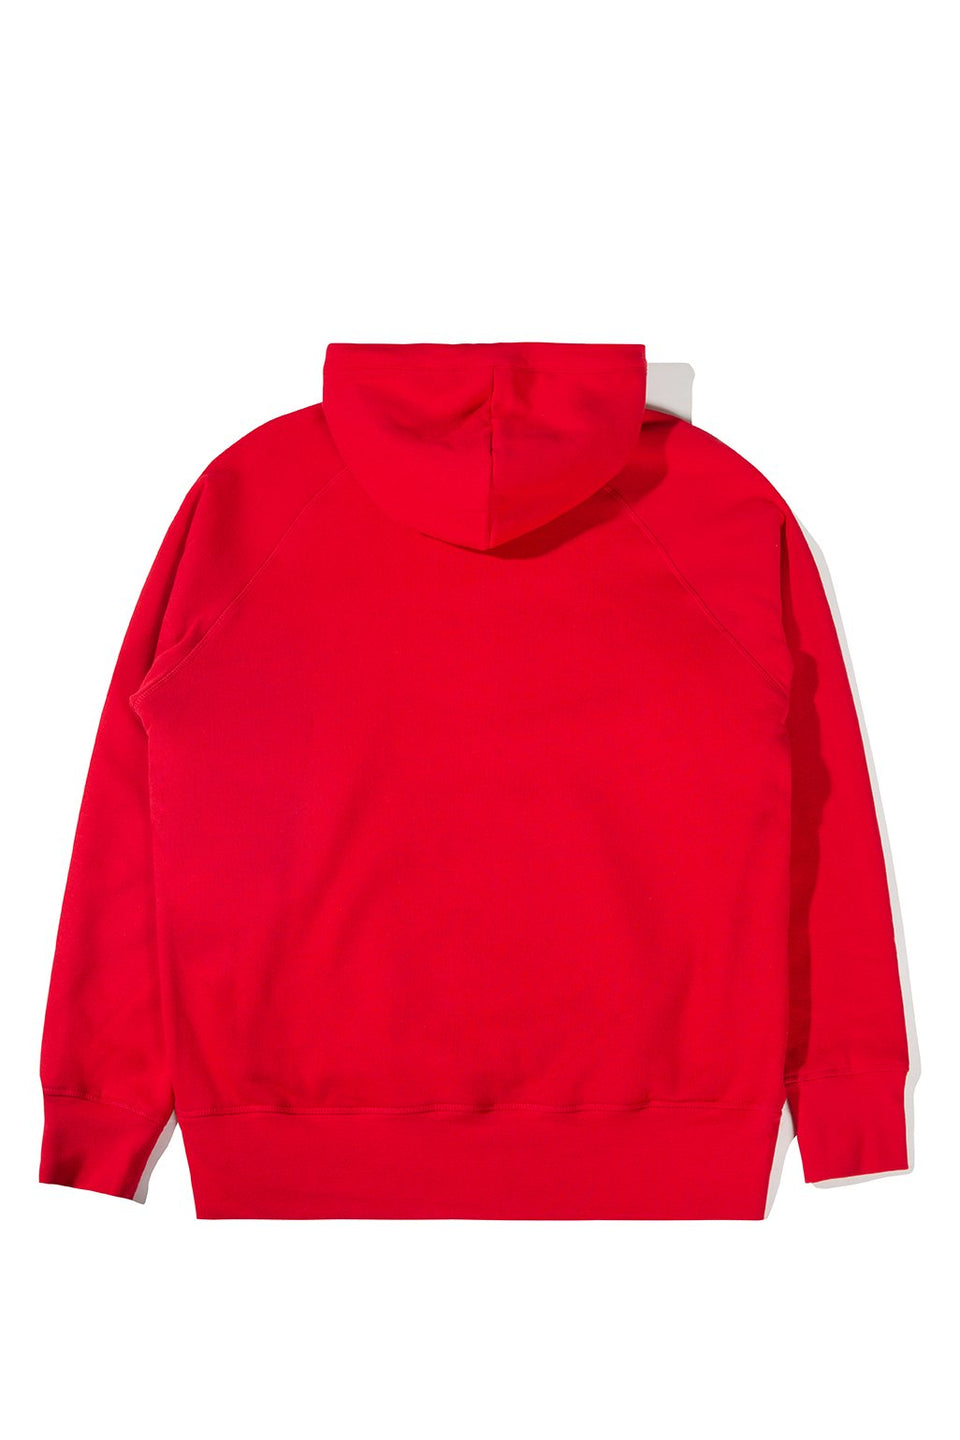 The Hundreds Alma Pullover Hoodie TOPS Red